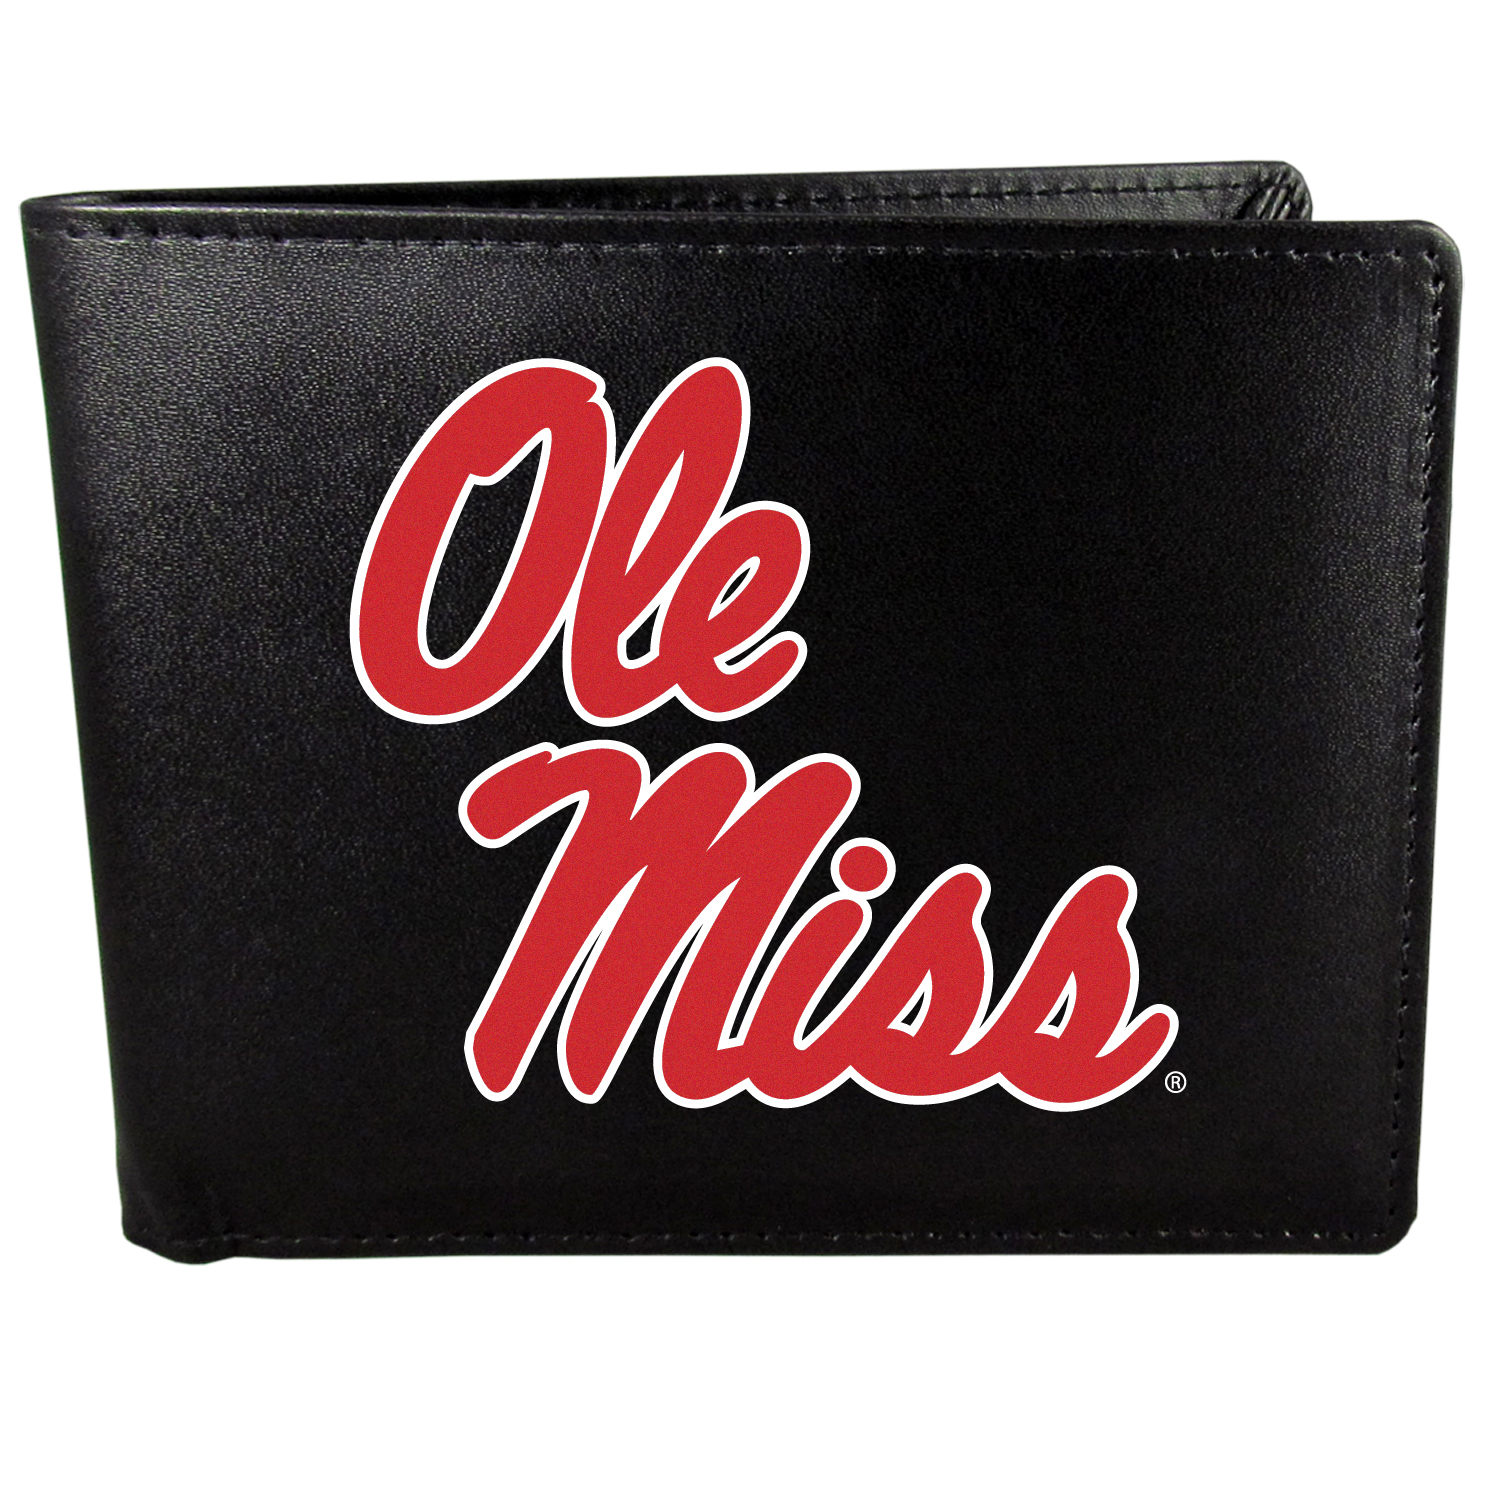 Mississippi Rebels Bi-fold Wallet Large Logo - Sports fans do not have to sacrifice style with this classic bi-fold wallet that sports the Mississippi Rebels extra large logo. This men's fashion accessory has a leather grain look and expert craftmanship for a quality wallet at a great price. The wallet features inner credit card slots, windowed ID slot and a large billfold pocket. The front of the wallet features a printed team logo.